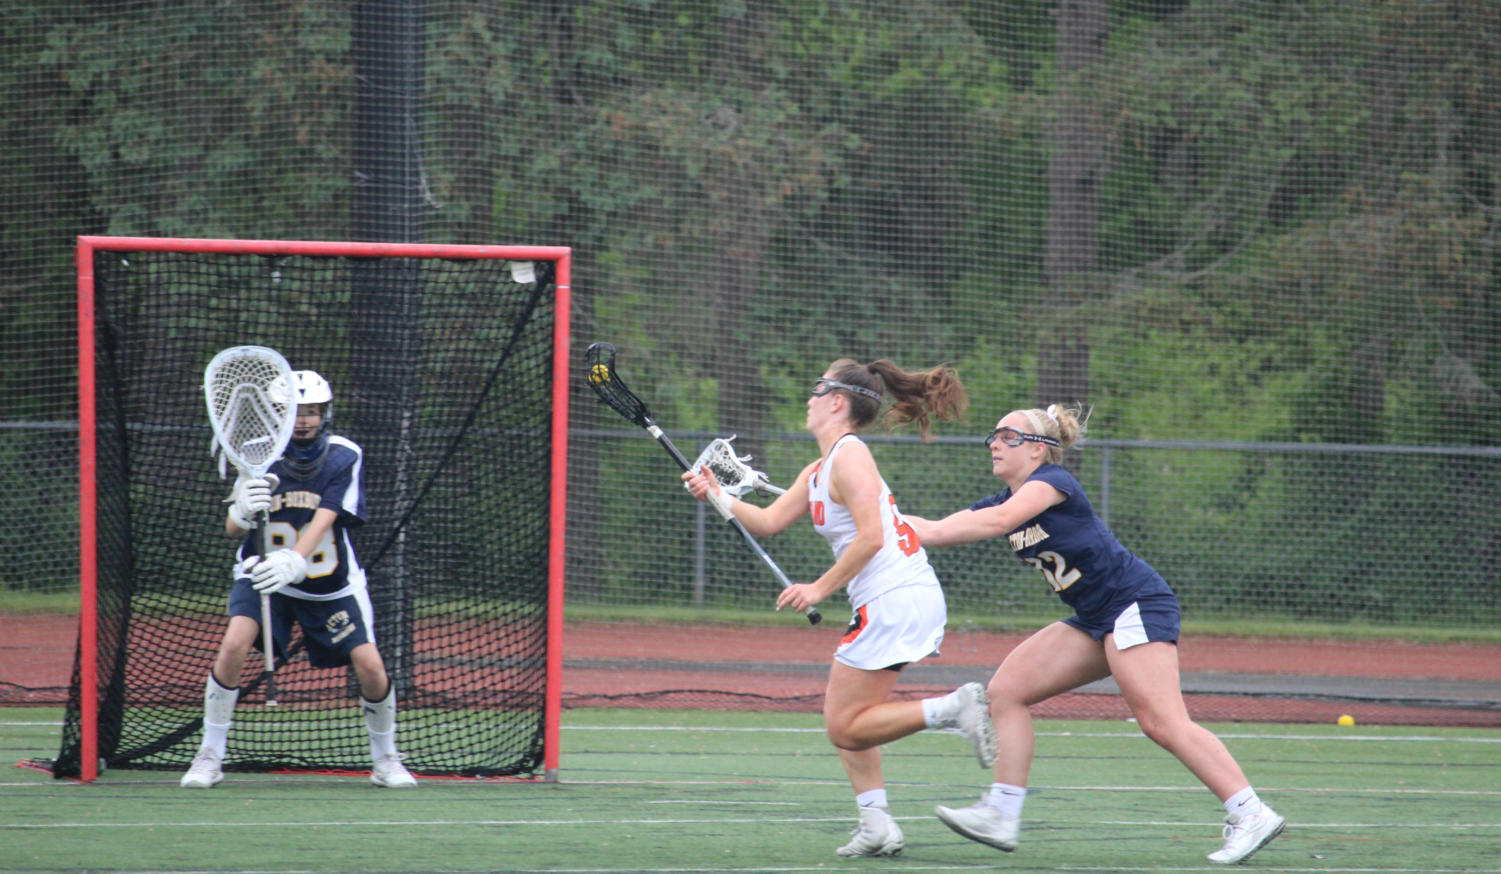 Balicki+charges+toward+the+net+with+Acton-Boxborough+close+behind.